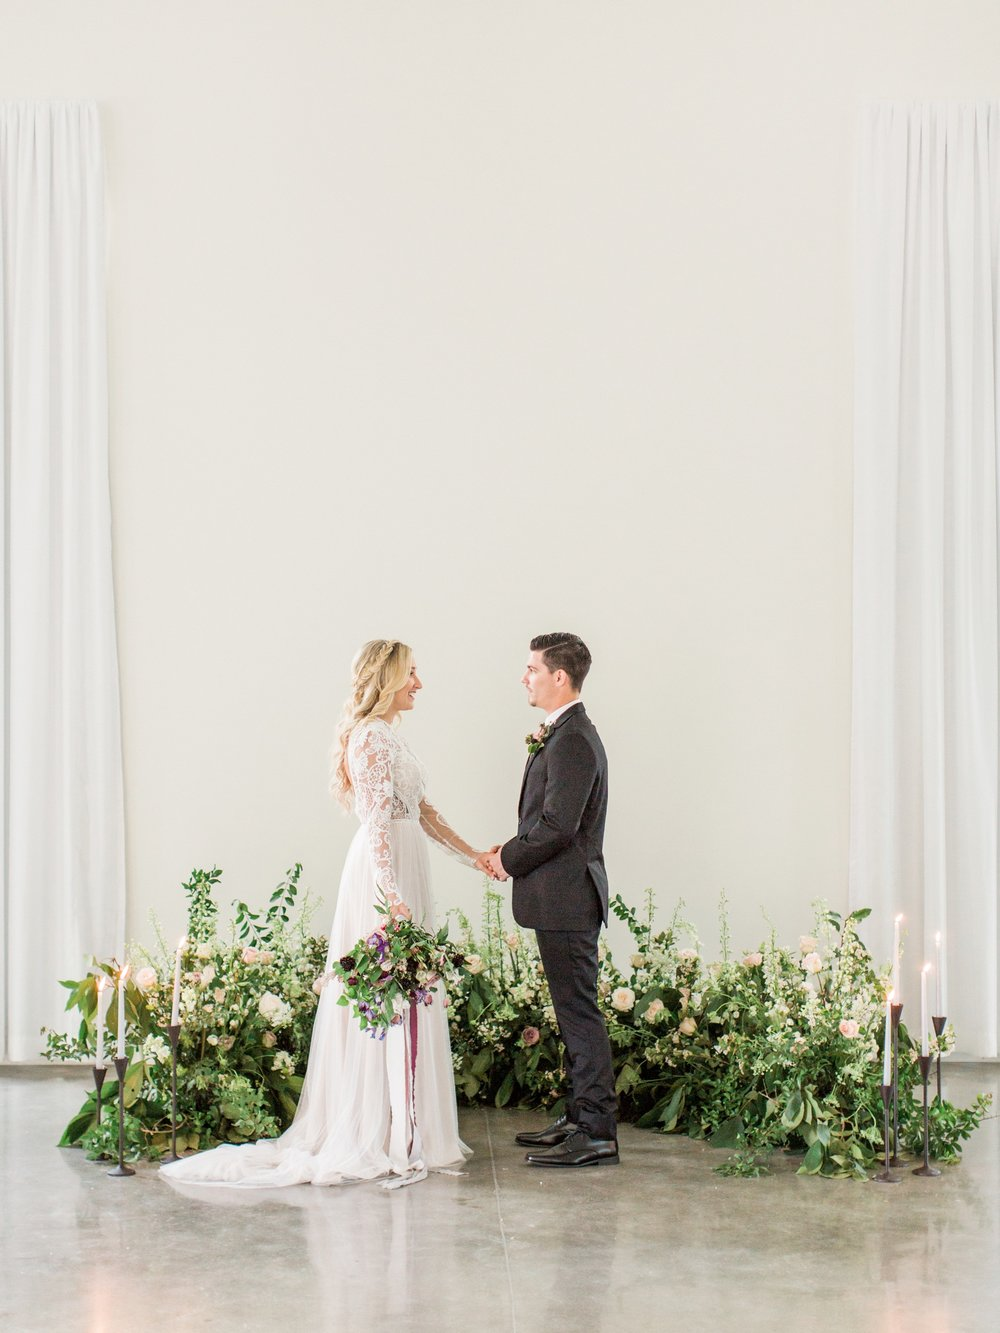 Elope In Style - Jessica Kersey - Northwest Arkansas Wedding Photographer_0212